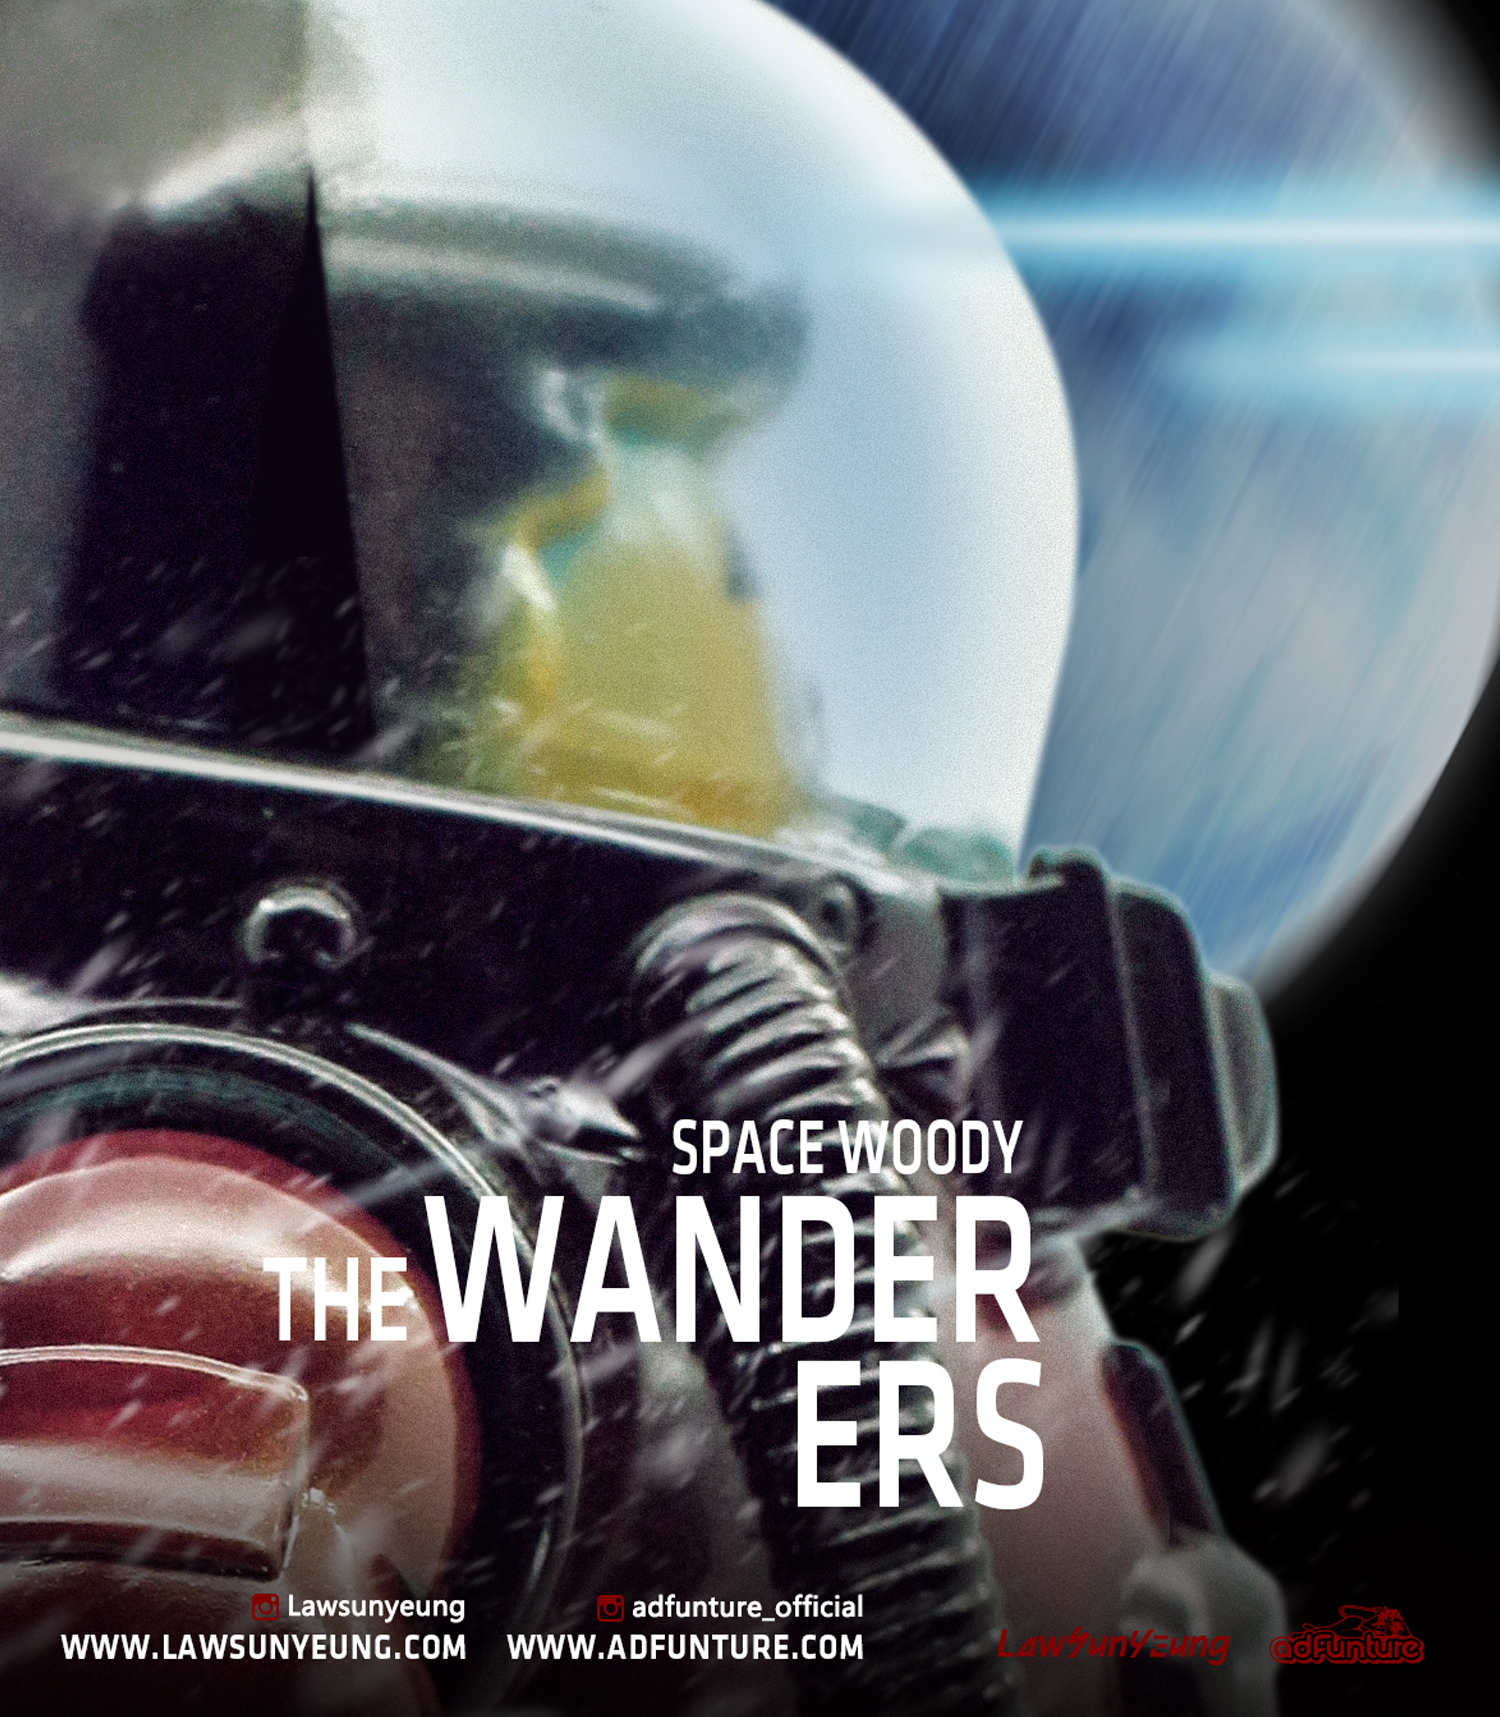 The Wanderers - The latest edition of Law Sun Yeung's SPACE WOODY